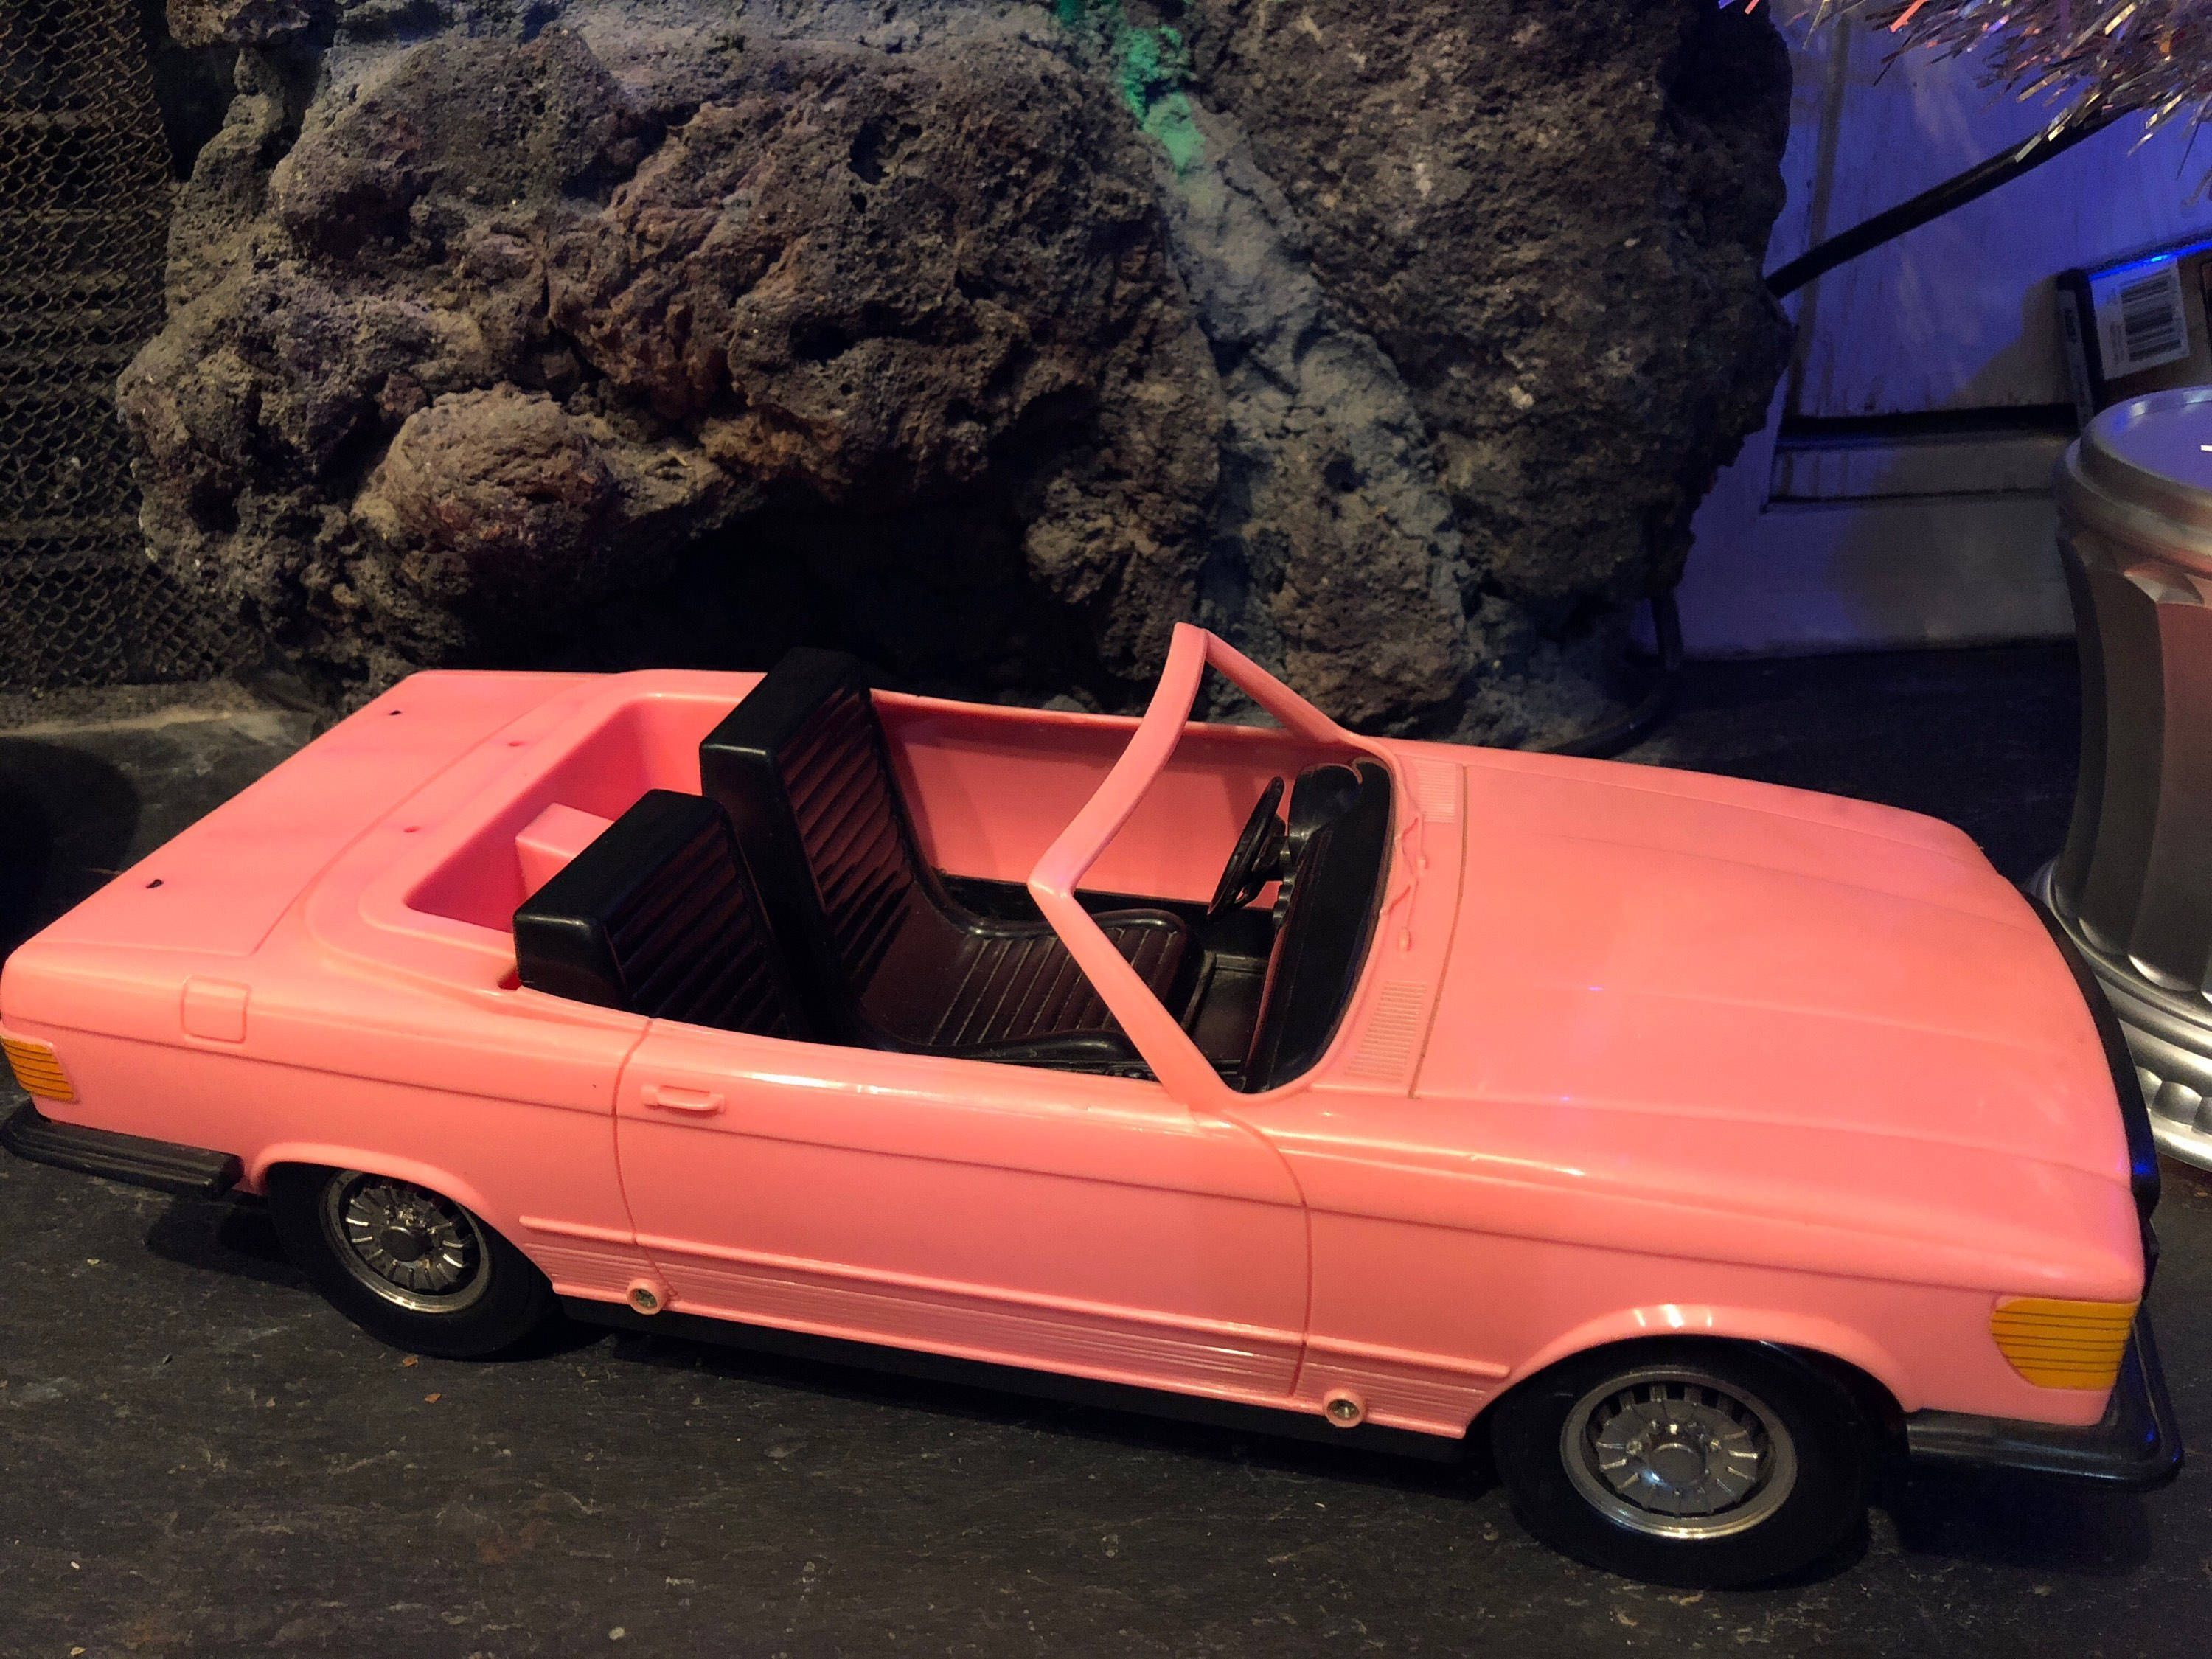 Barbie Car pink 1983 by HollyWouldFind on Etsy #barbiecars Barbie Car pink 1983 by HollyWouldFind on Etsy #barbiecars Barbie Car pink 1983 by HollyWouldFind on Etsy #barbiecars Barbie Car pink 1983 by HollyWouldFind on Etsy #barbiecars Barbie Car pink 1983 by HollyWouldFind on Etsy #barbiecars Barbie Car pink 1983 by HollyWouldFind on Etsy #barbiecars Barbie Car pink 1983 by HollyWouldFind on Etsy #barbiecars Barbie Car pink 1983 by HollyWouldFind on Etsy #barbiecars Barbie Car pink 1983 by Holl #barbiecars